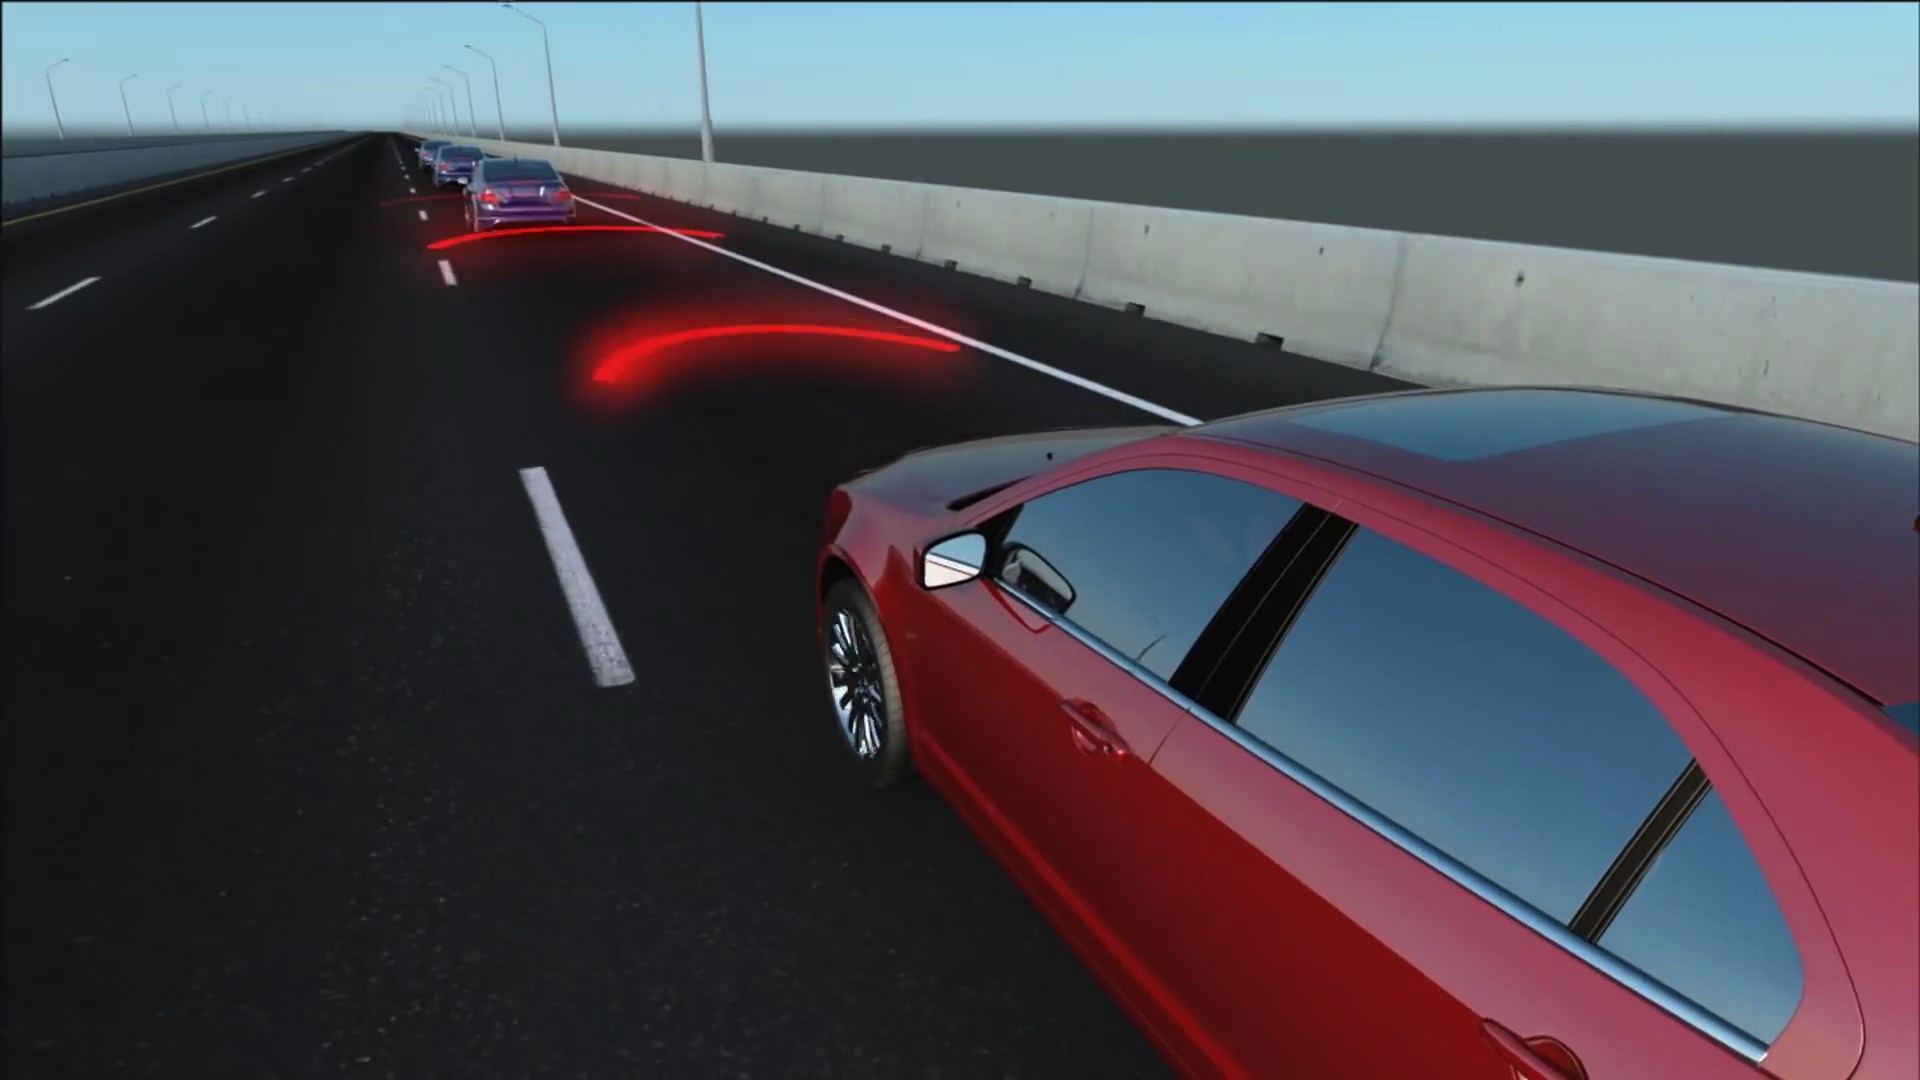 Video: Car Tech 101: Defining the levels of self-driving